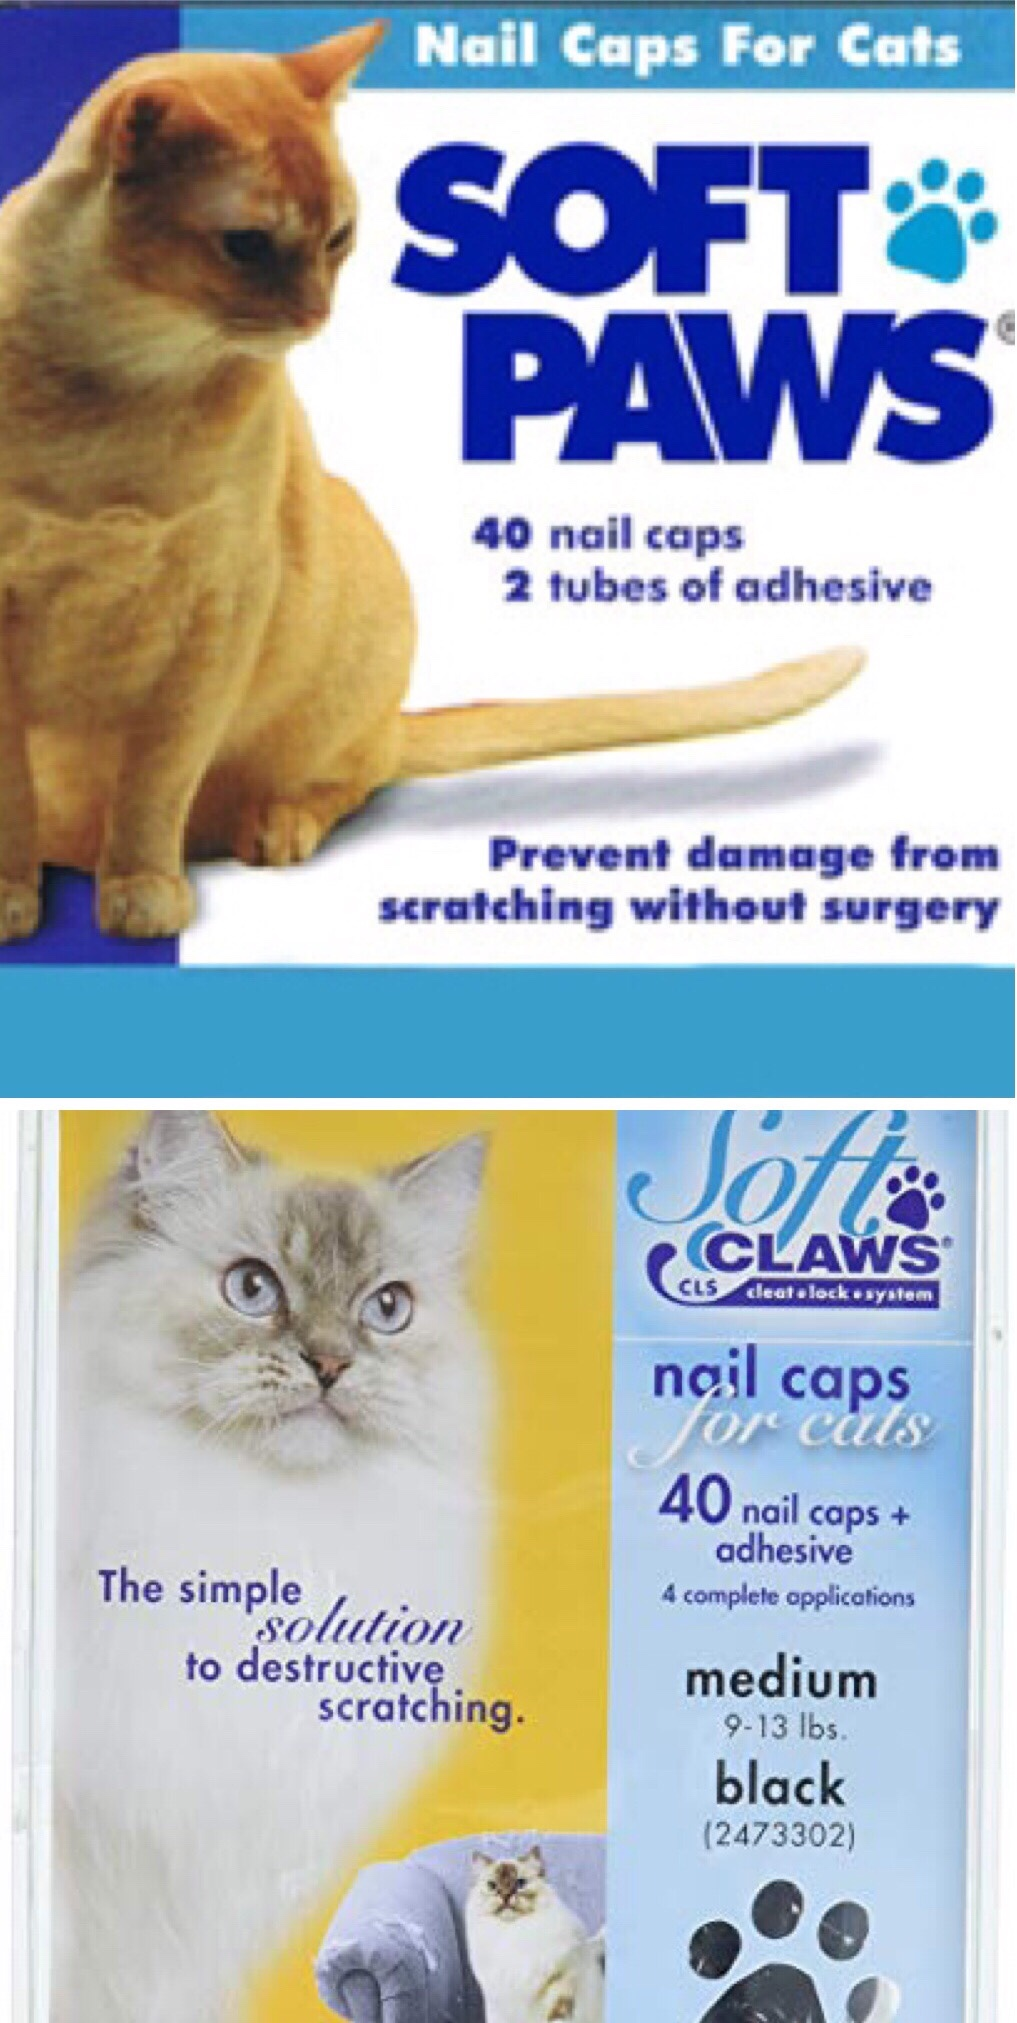 Soft Paws/Soft Claws nail caps for cats.